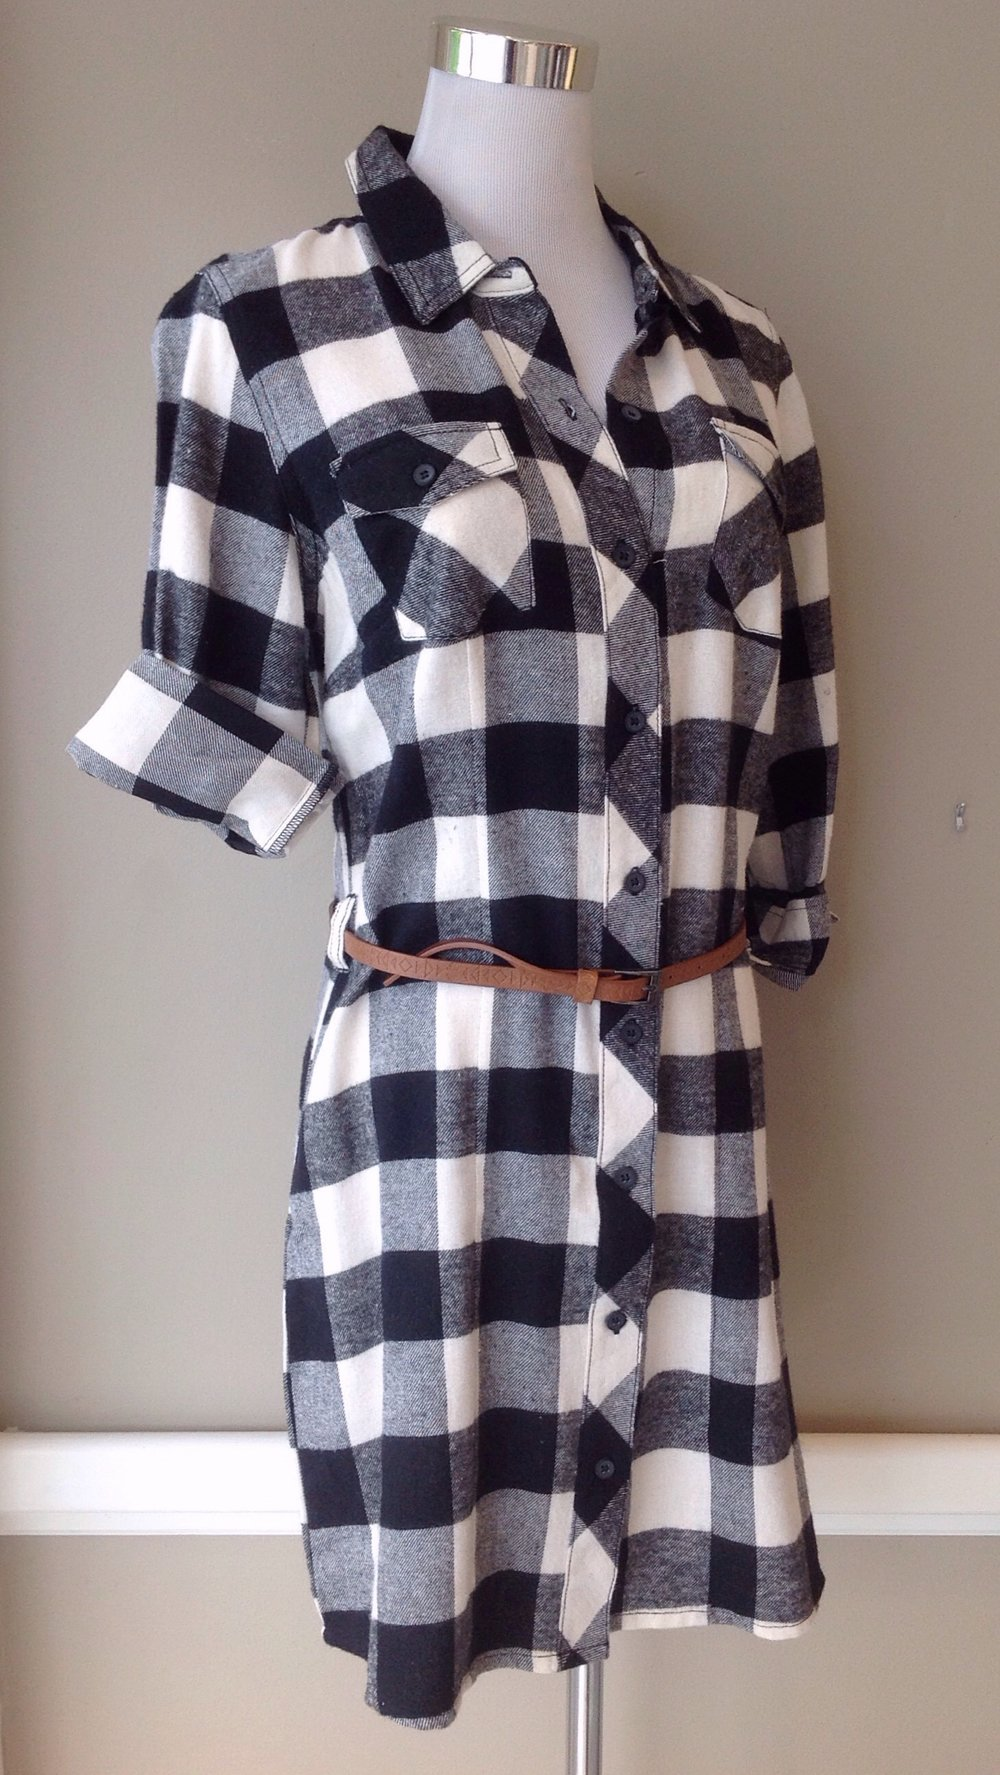 Buffalo check shirt dress with skinny belt, $38